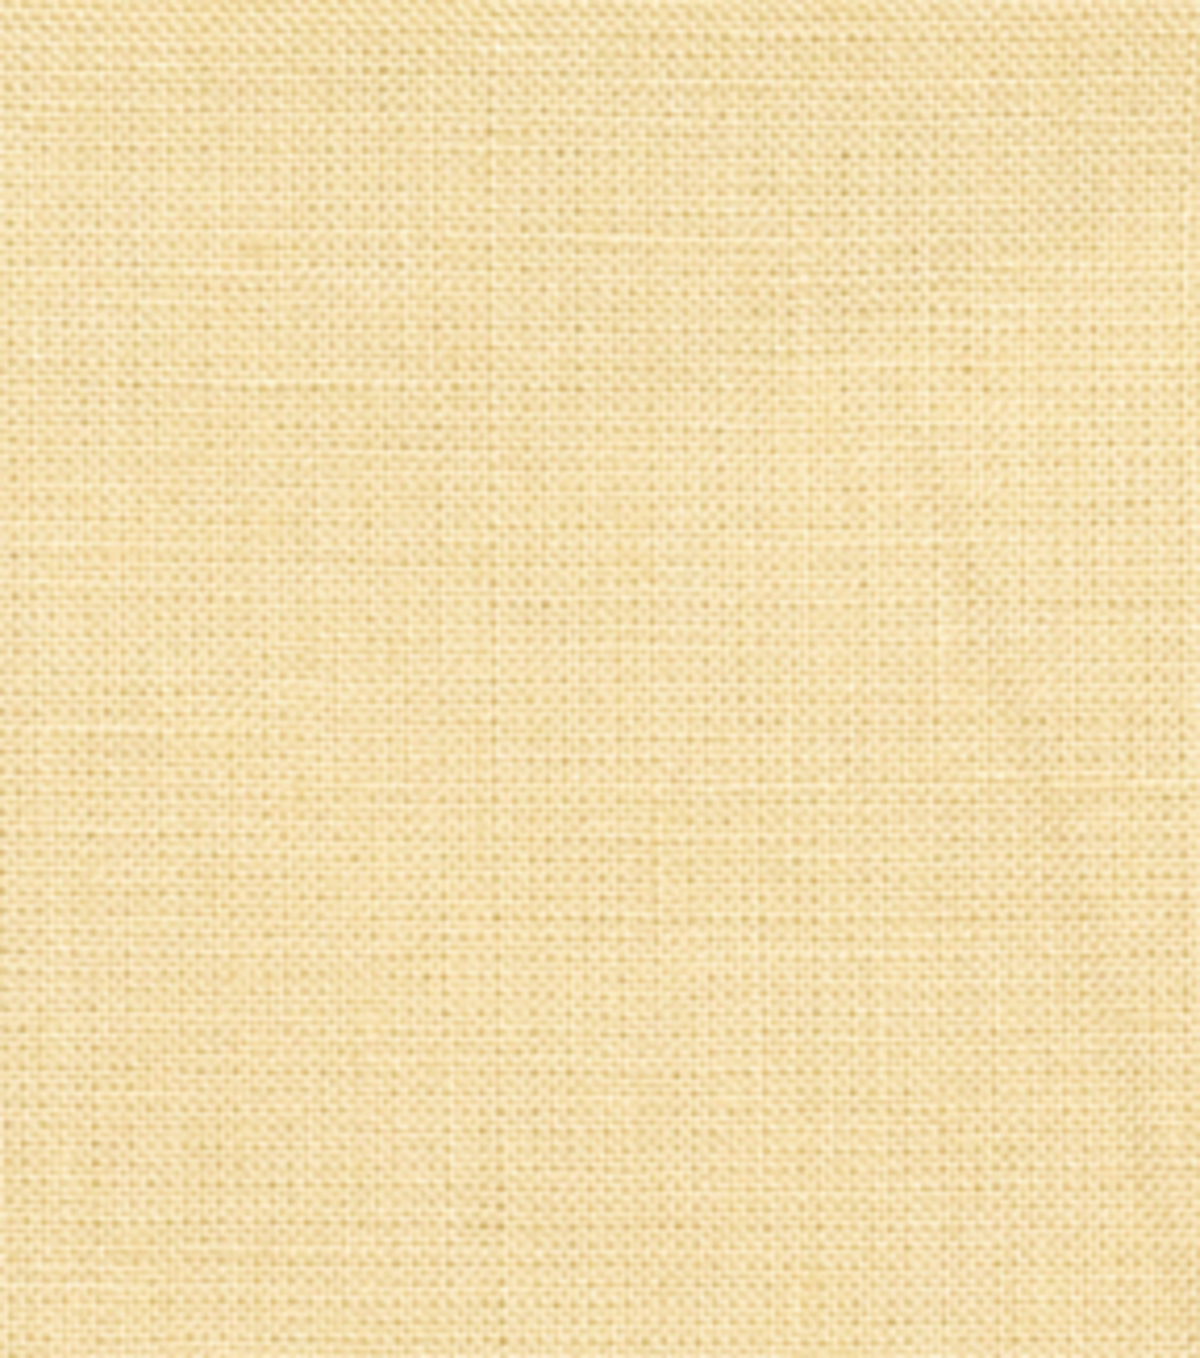 Home Decor 8\u0022x8\u0022 Fabric Swatch-Signature Series Rockford Linen Parchment